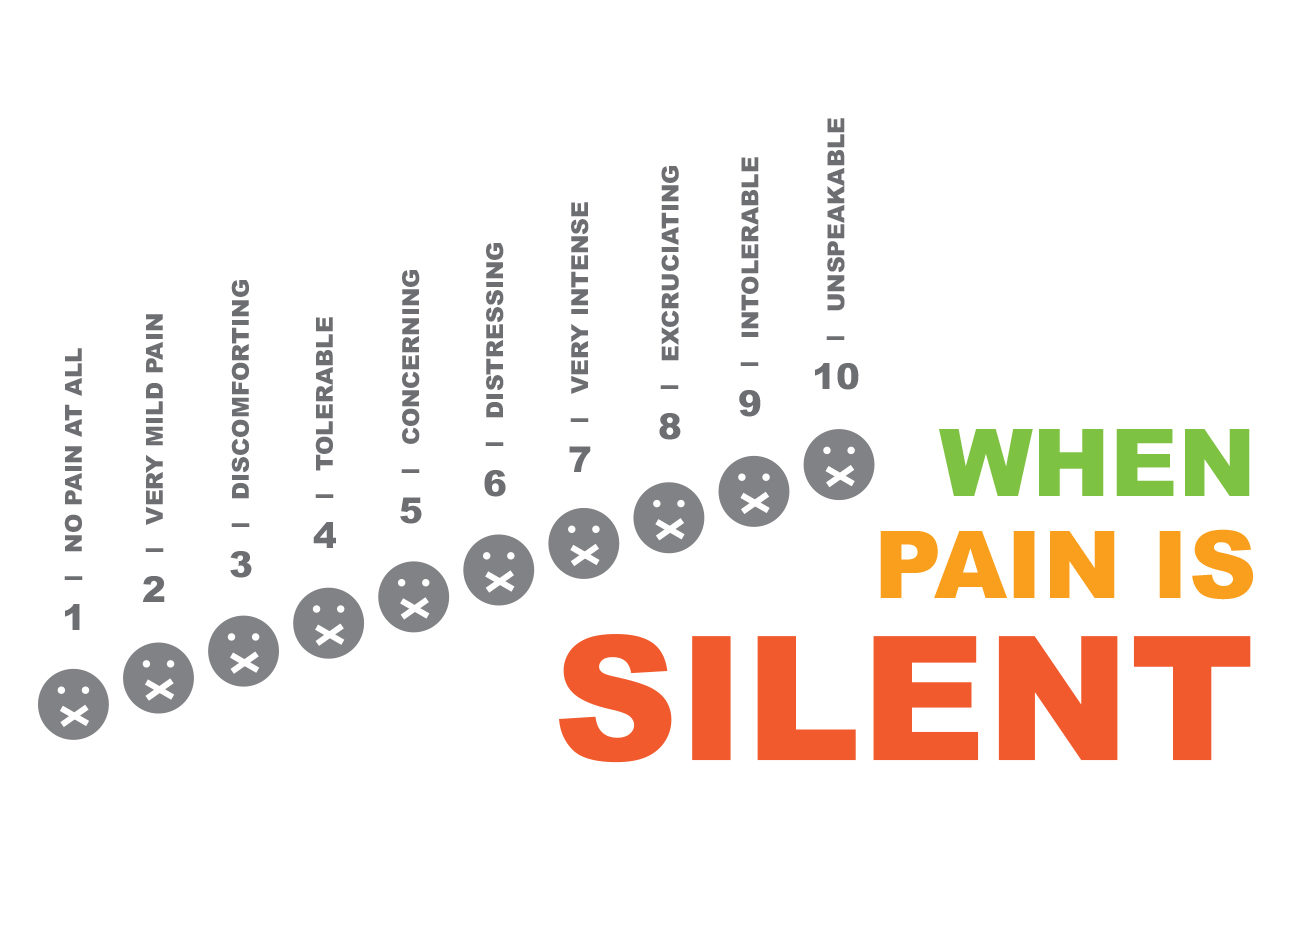 hight resolution of illustration of a modified pain scale used in hospitals featuring faces with band aids covering